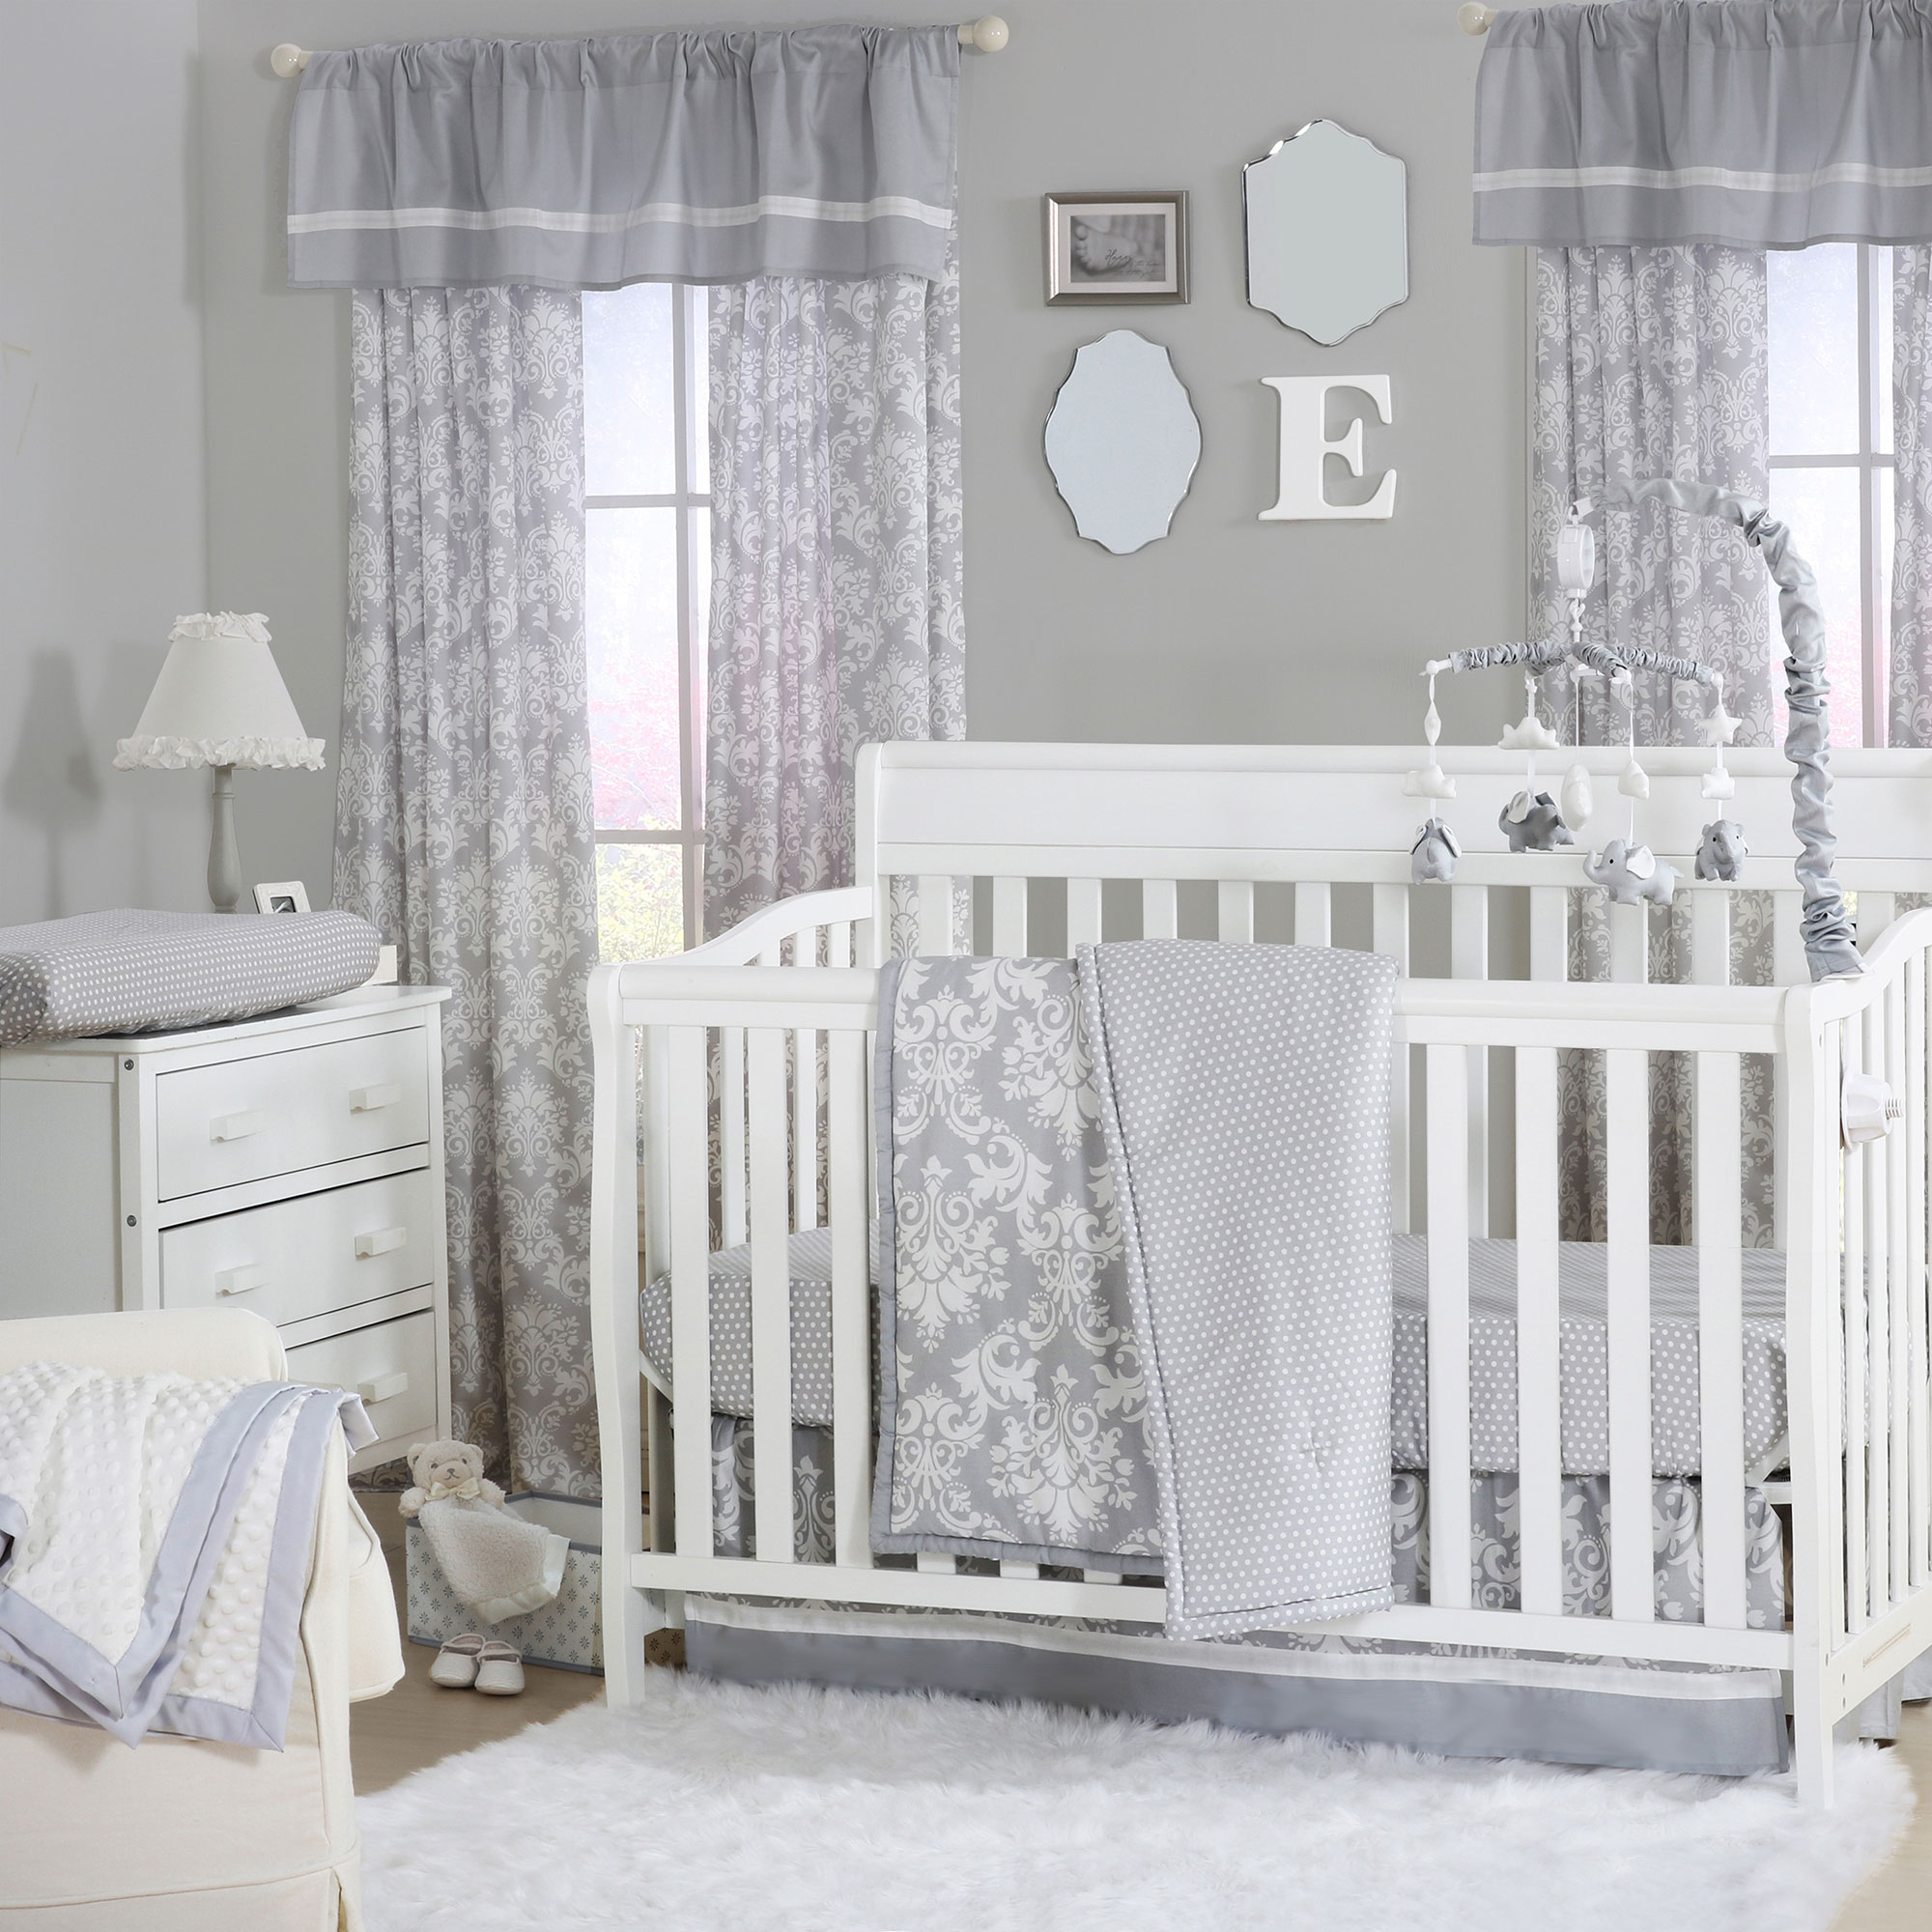 Grey Damask and Dot Print 3 Piece Baby Crib Bedding Set by T